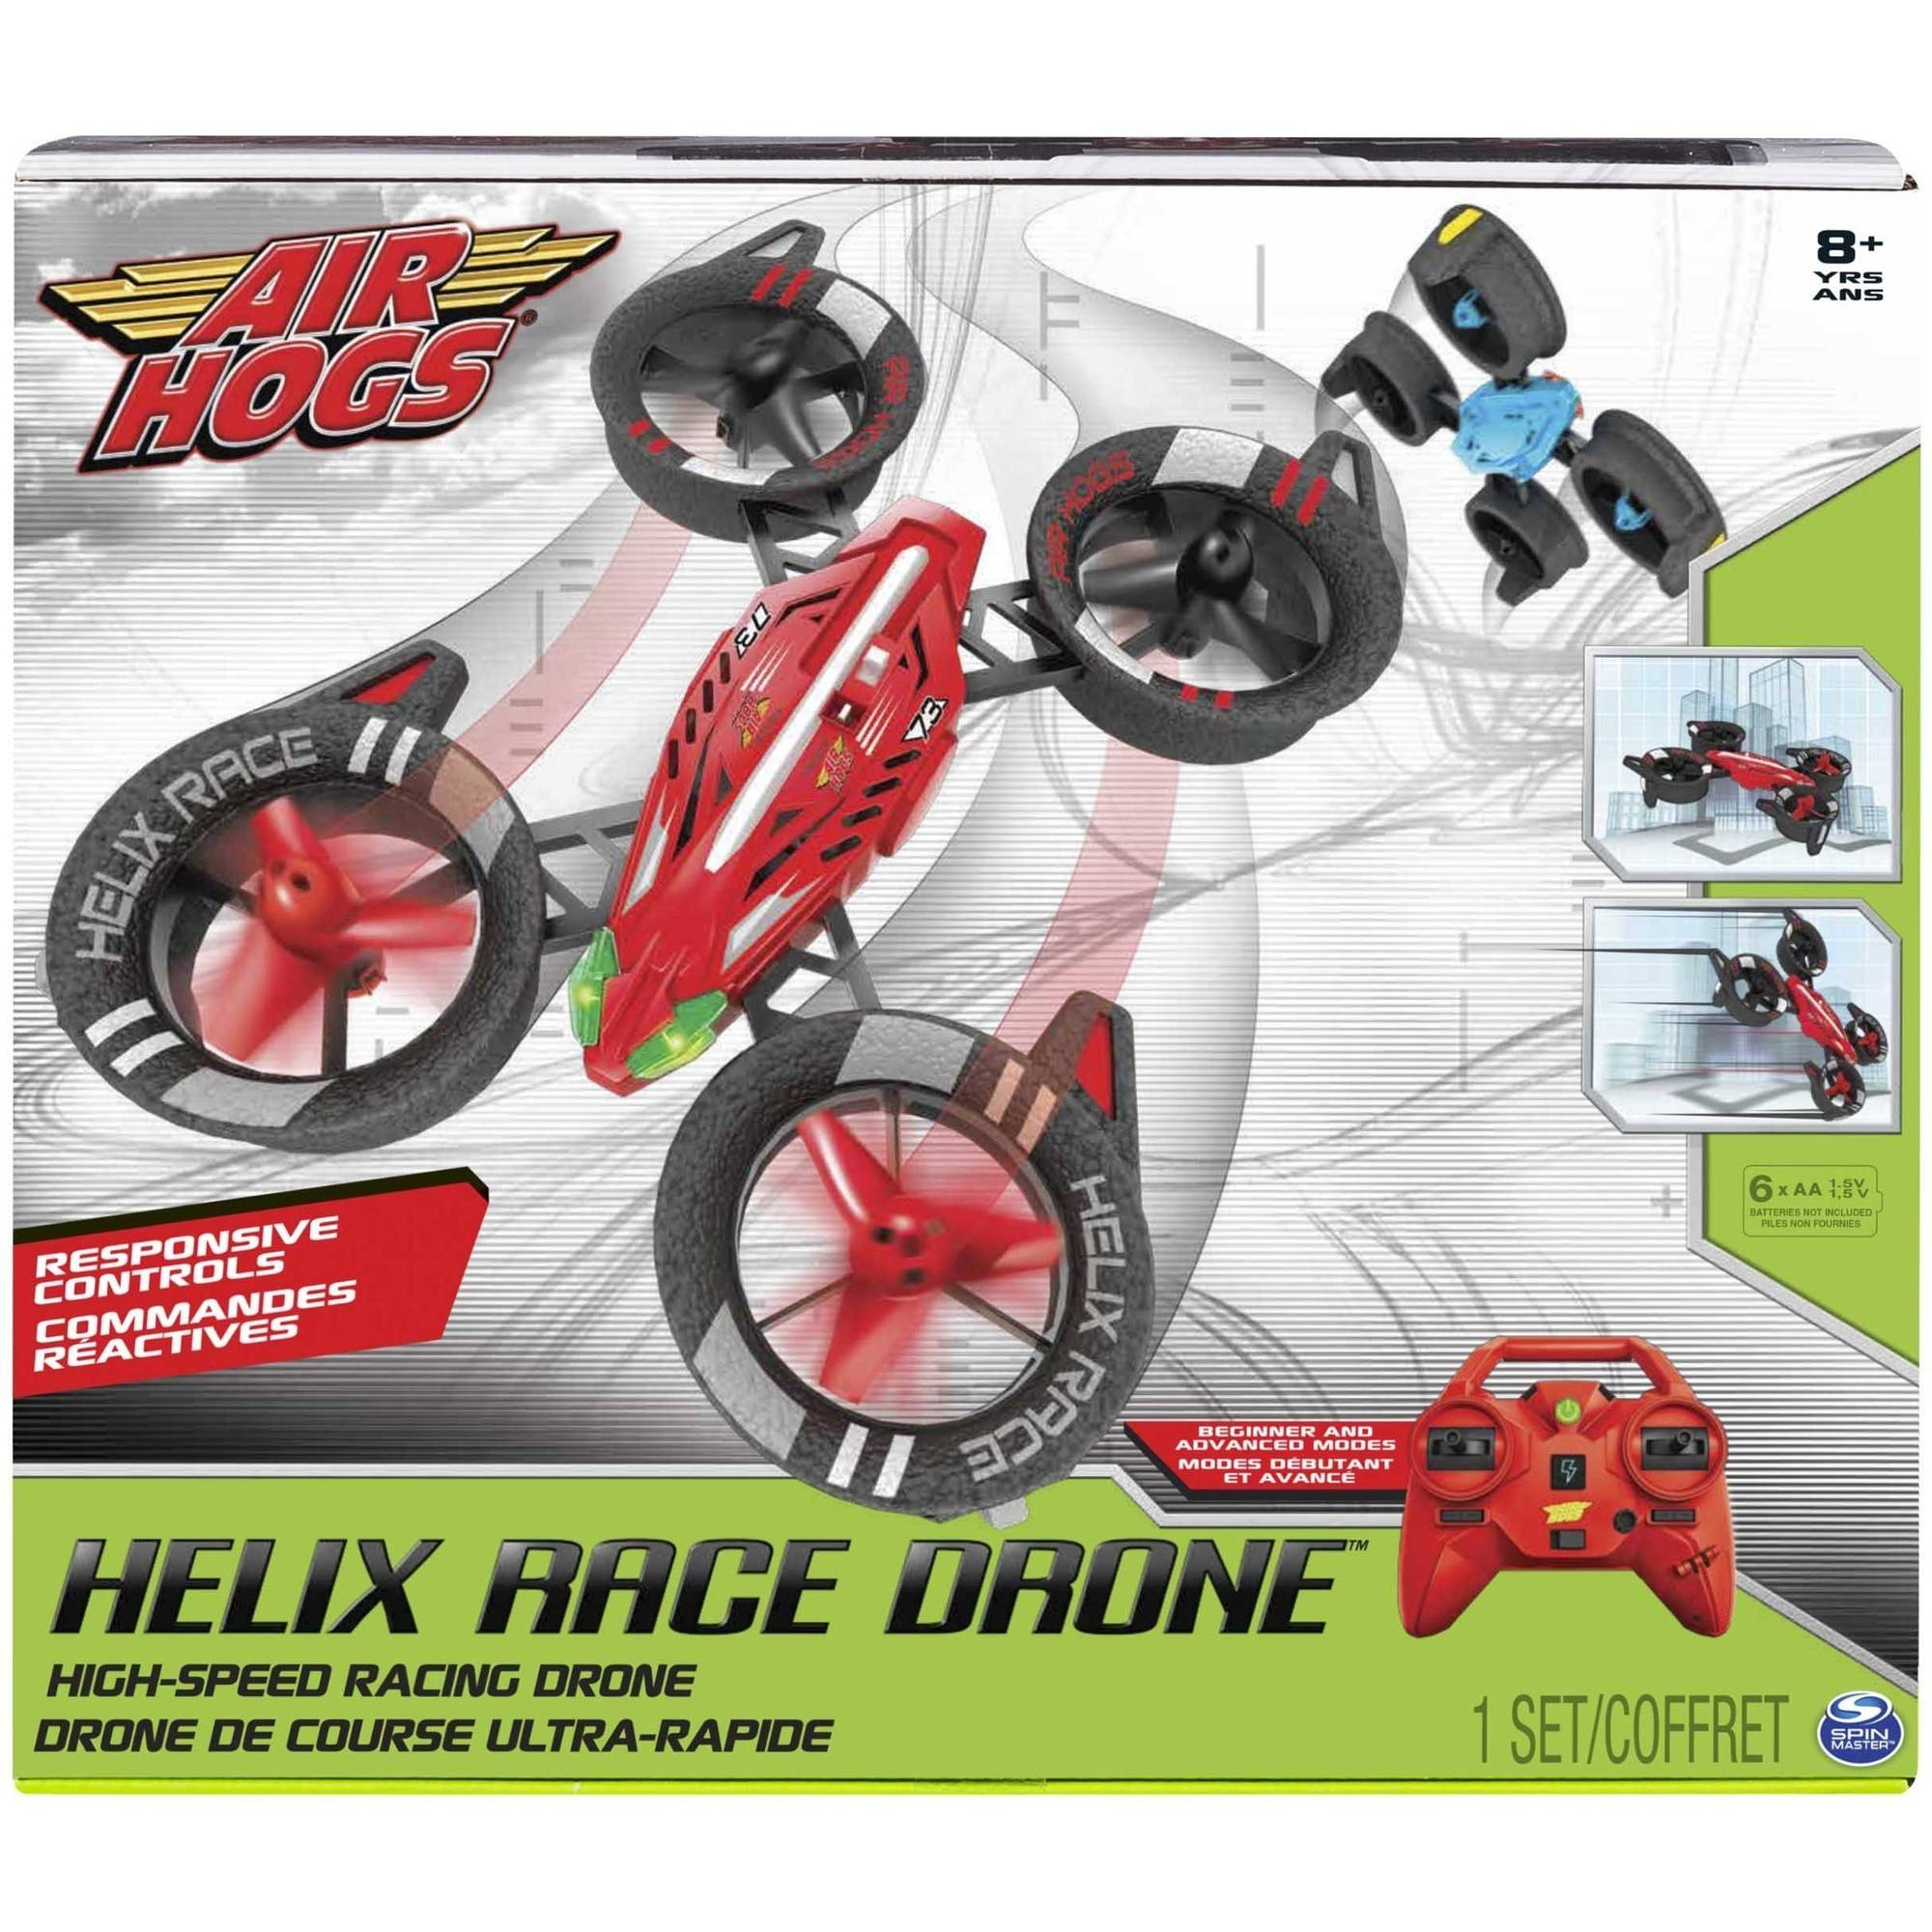 Air Hogs Helix Race Drone, 2.4 GHZ, RC Vehicle Color may vary by Spin Master Ltd